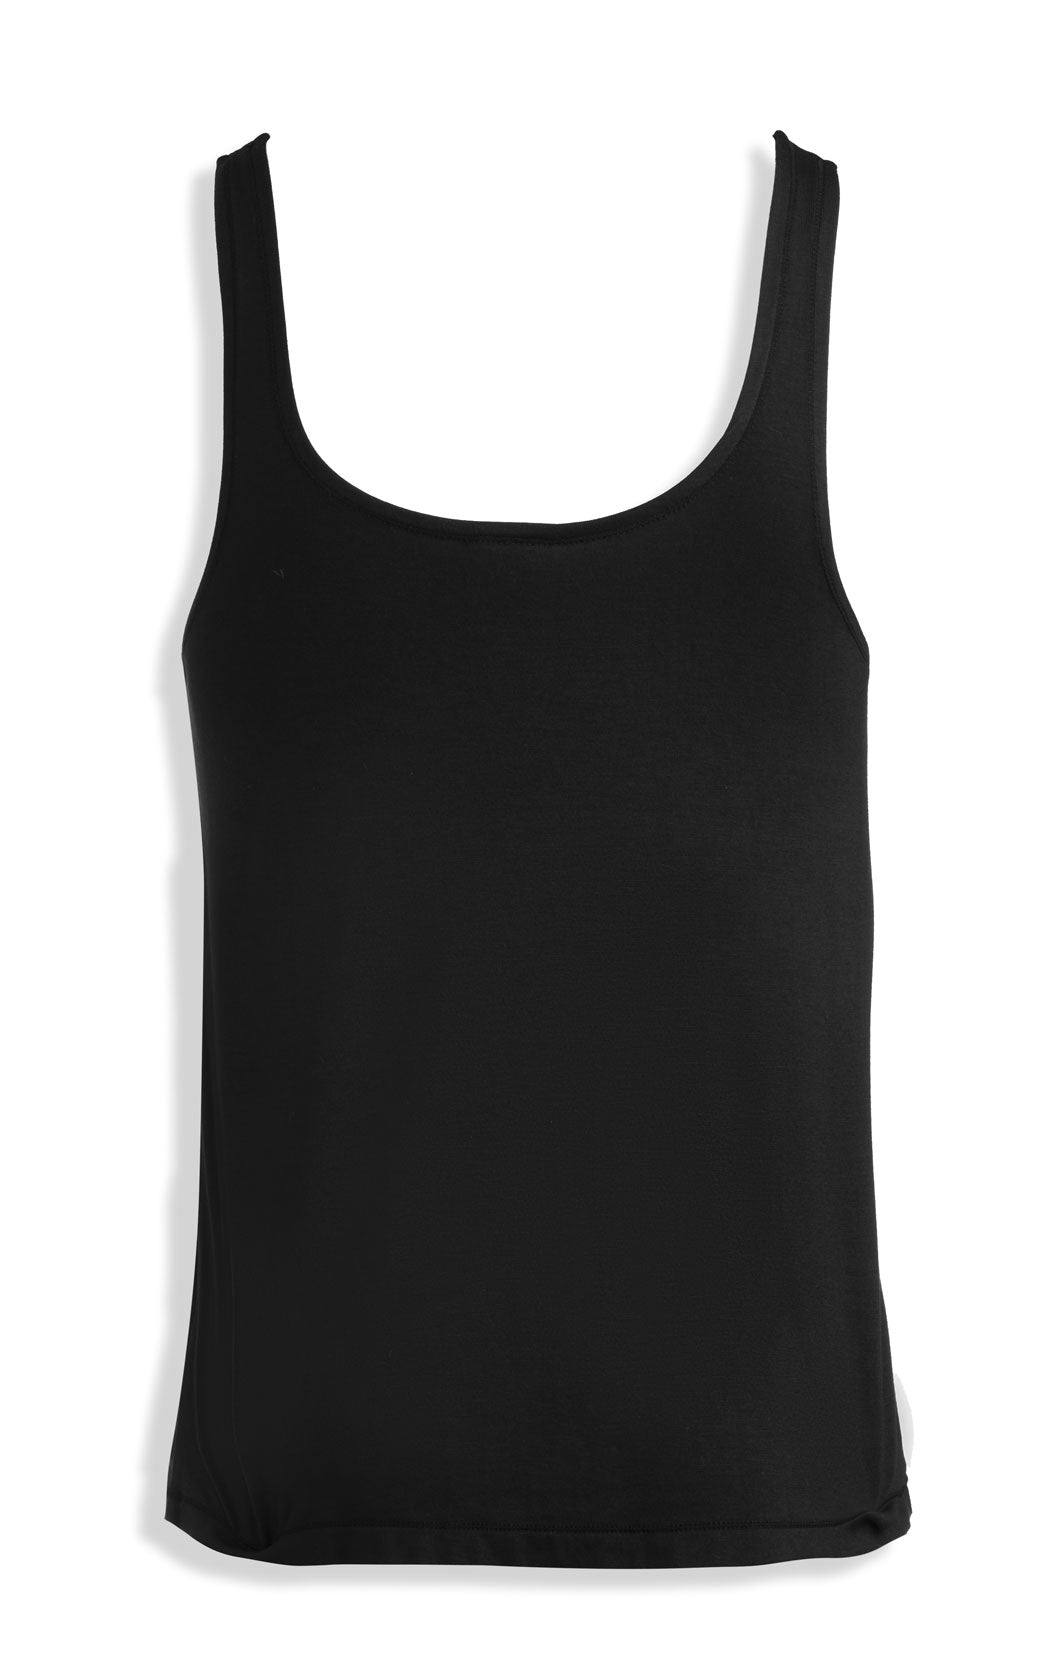 THE LOVE TANK • SCOOP NECK